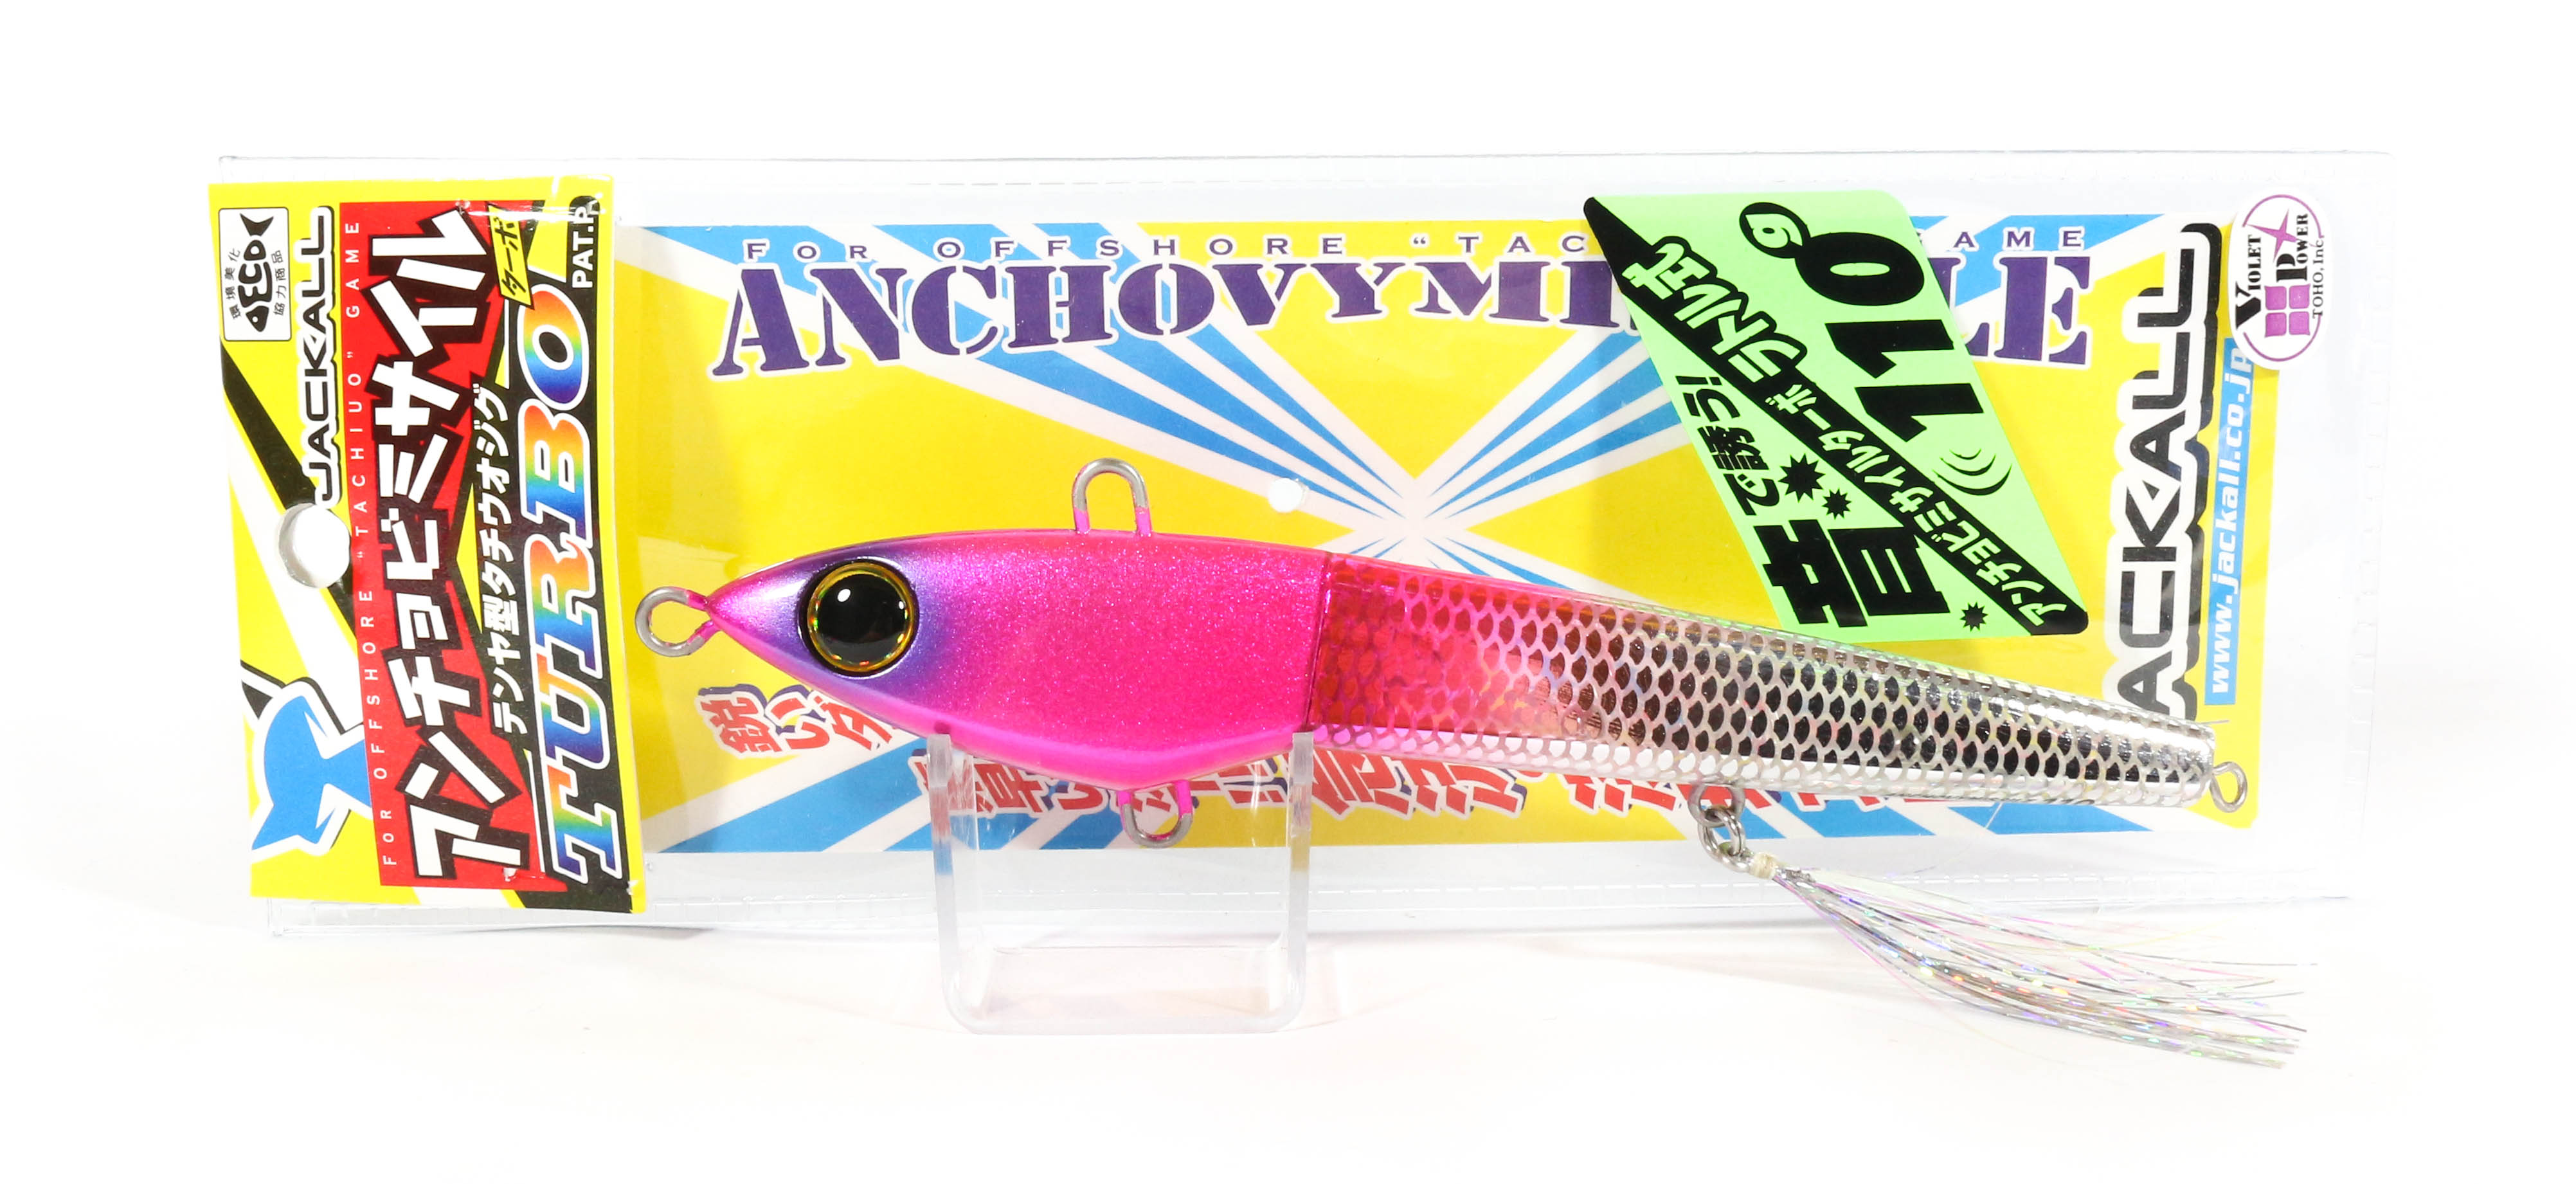 Sale Jackall Anchovy Missile Turbo Rattleshiki Jig 90 Grams Pink Silver (5412)